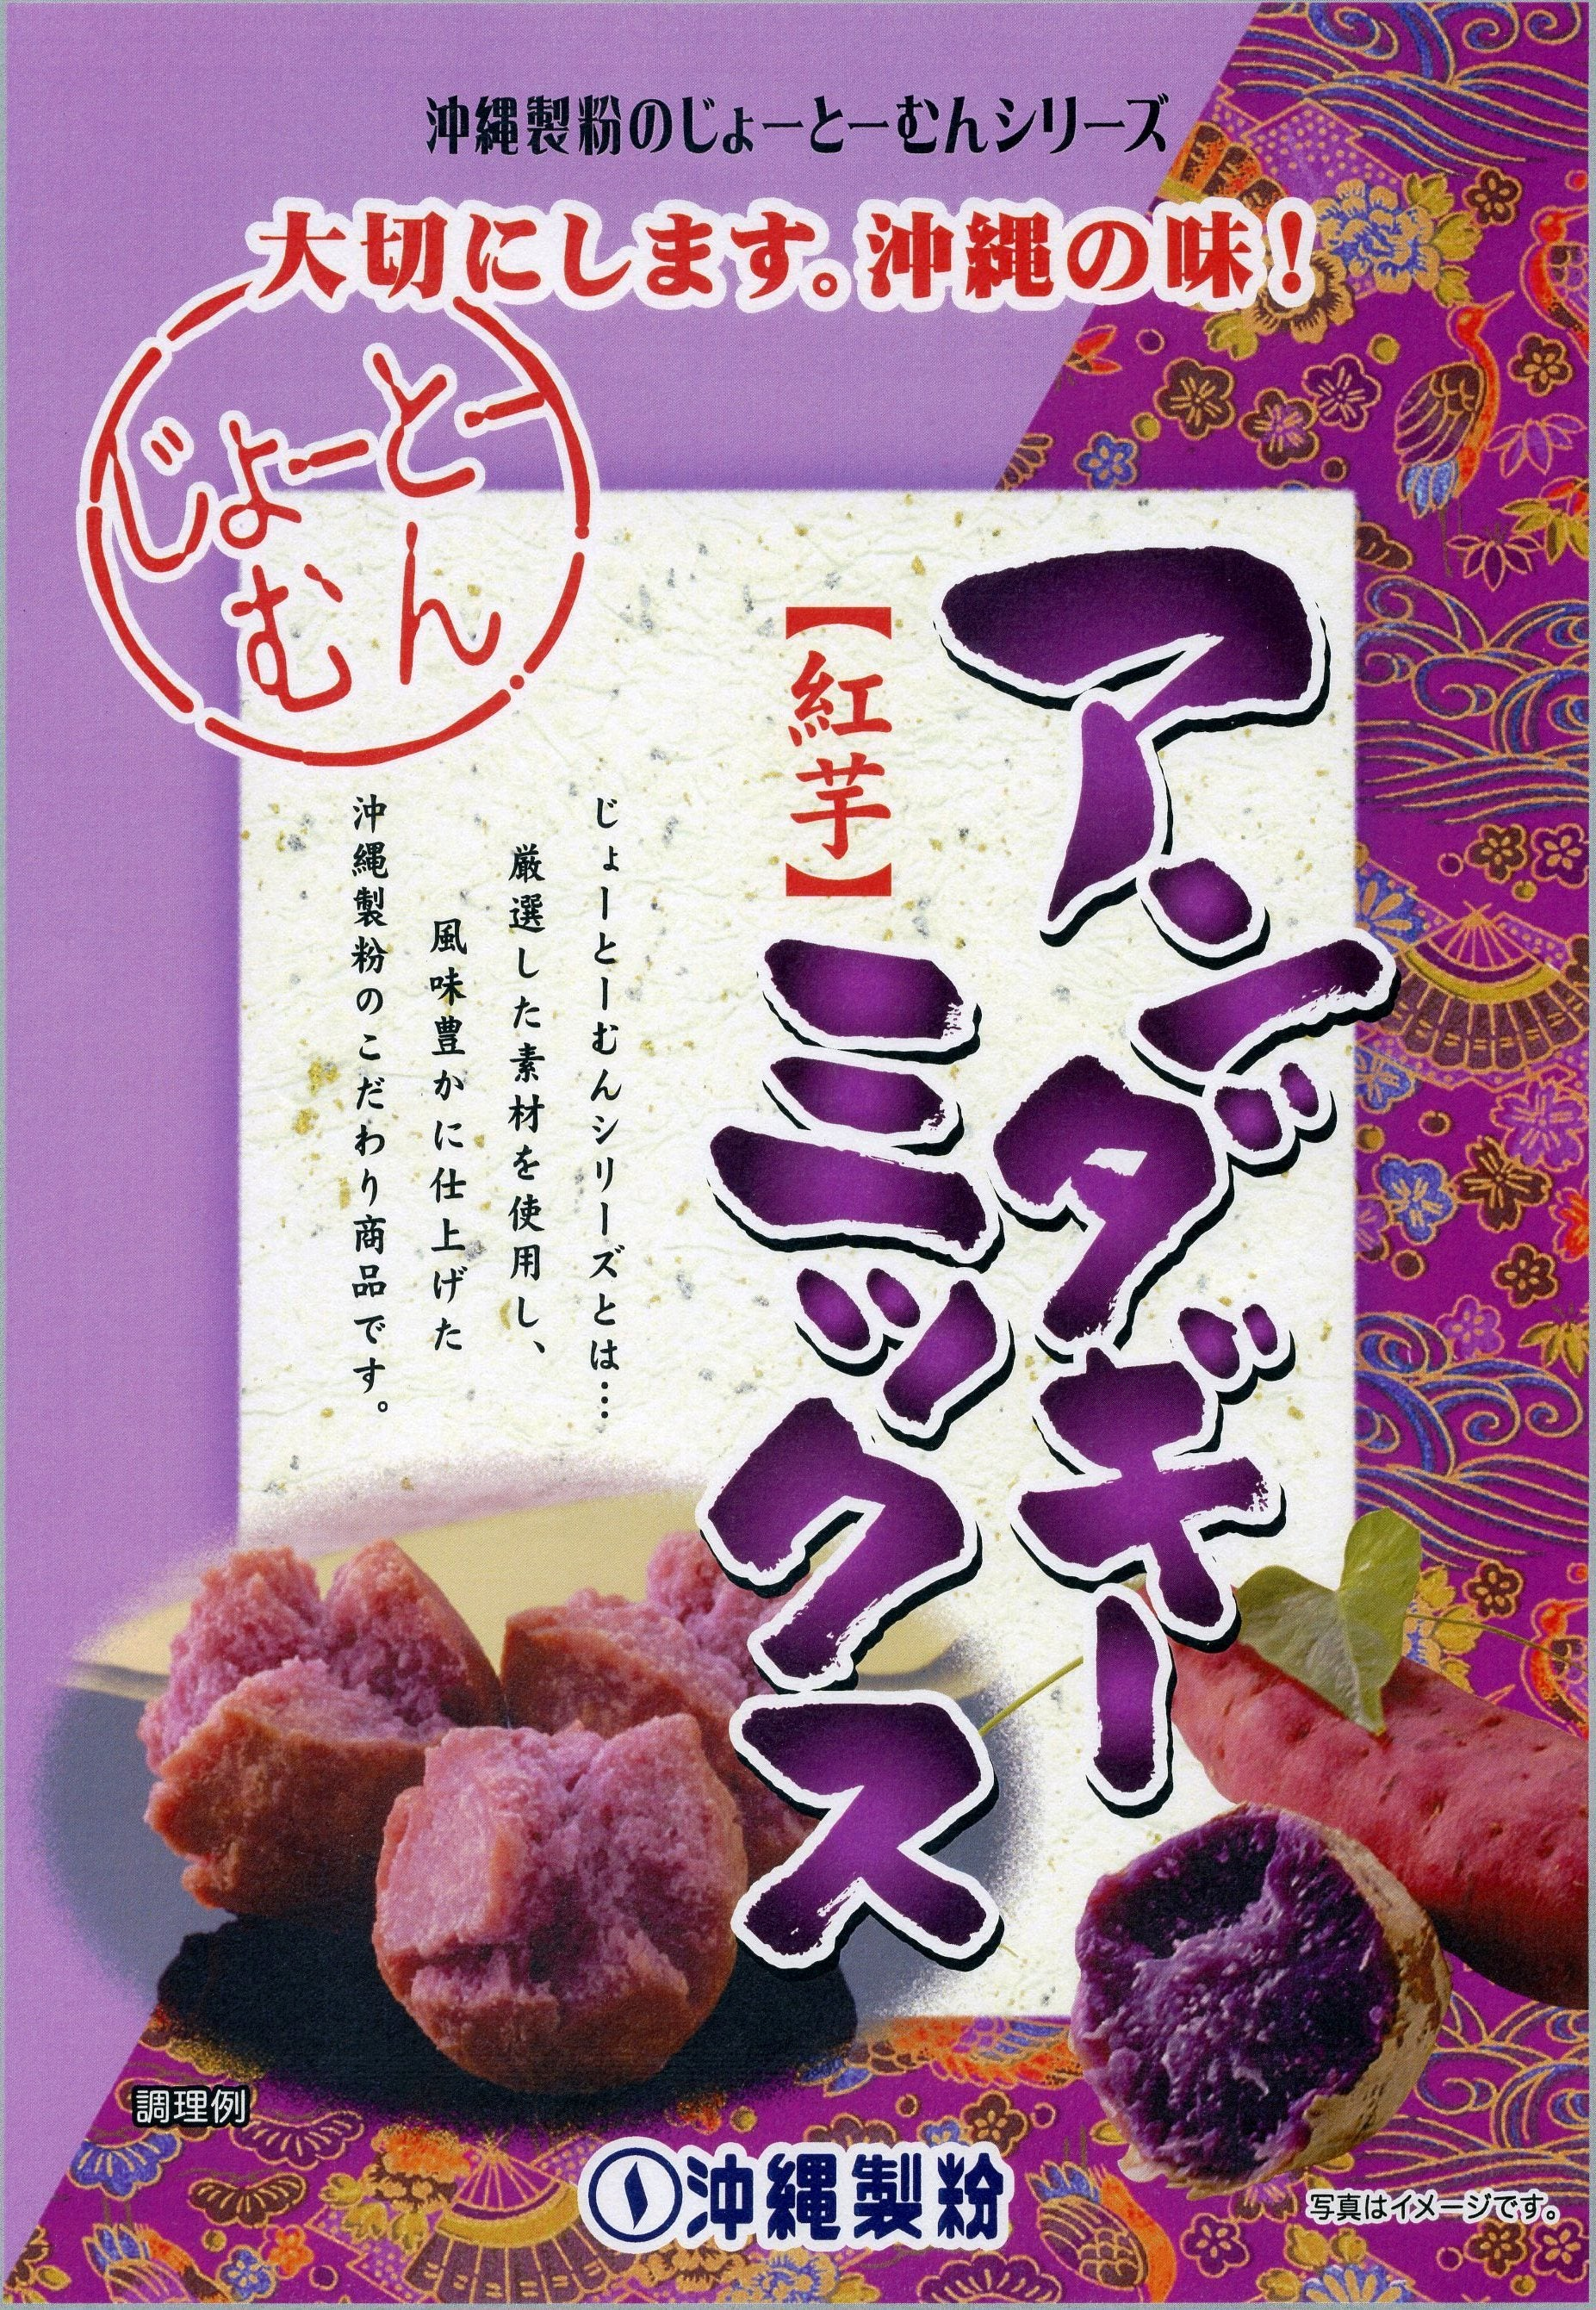 Jotomun Beni-imo Sata Andagi Mix ~ Purple Sweet Potato Flavor Mix ~ 350g - Kenko Root